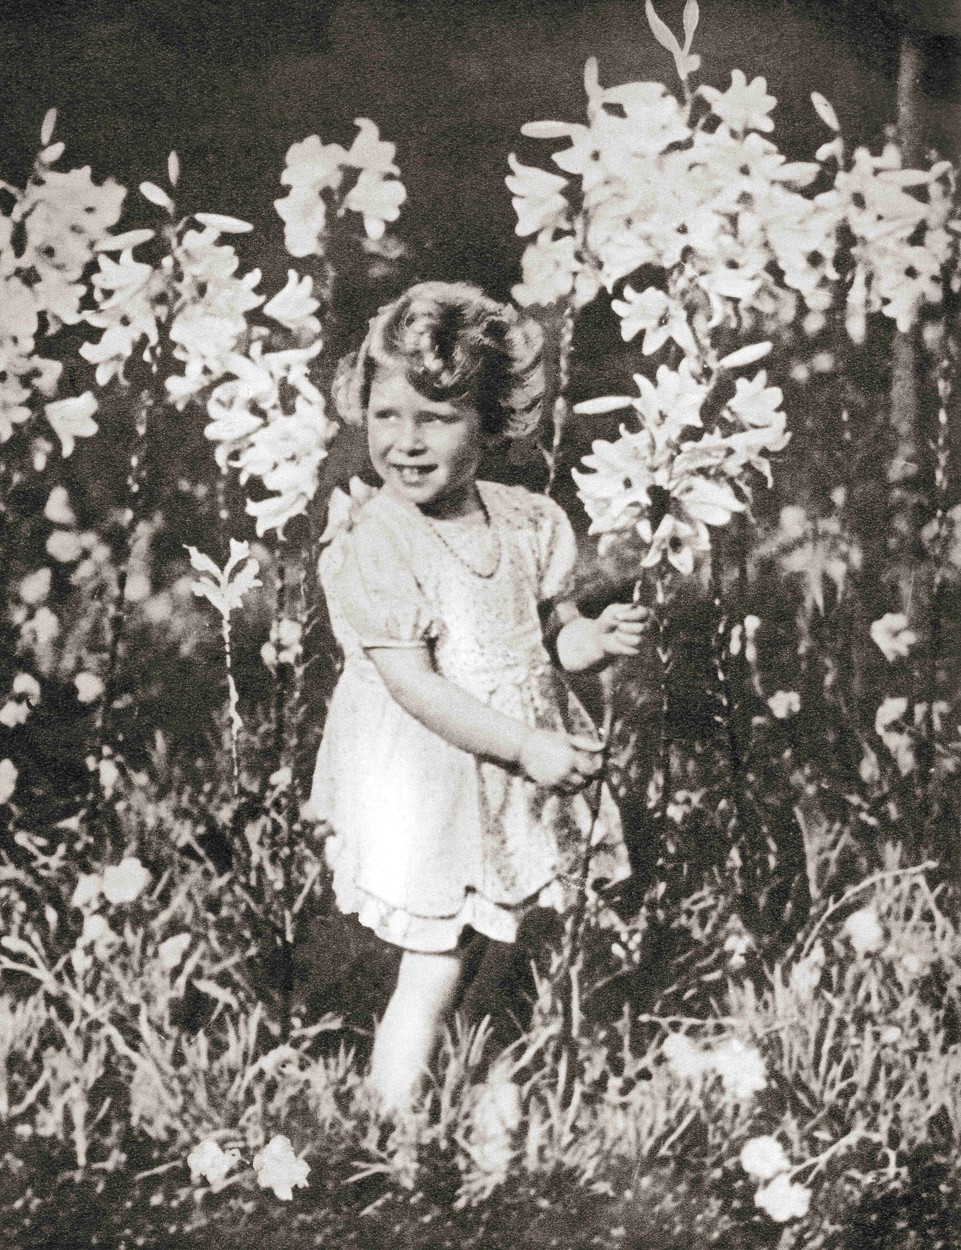 September 14, 2017: Princess Elizabeth of York aged 4, seen here in a photograph taken by her father King George VI. Princess Elizabeth of York, future Elizabeth II,  born 1926. Queen of the United Kingdom. From The Coronation Book of King George VI and Queen Elizabeth, published 1937., Image: 489637316, License: Rights-managed, Restrictions: , Model Release: no, Credit line: Ken Welsh / Zuma Press / Profimedia